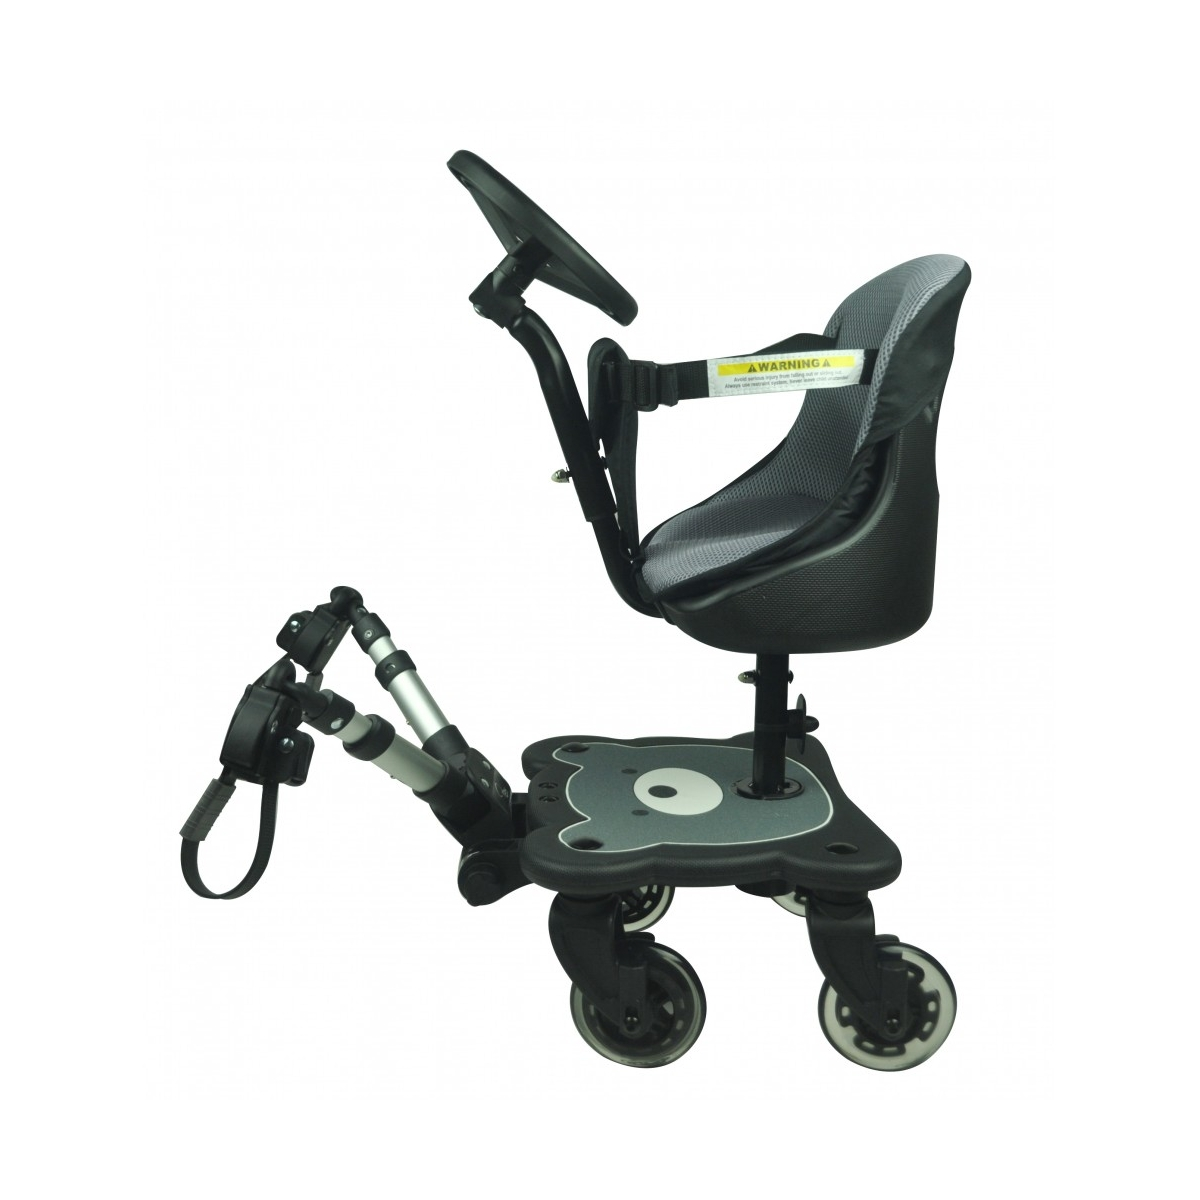 Roma 4 Rider Toddler Seat and Ride On Board (NEW)